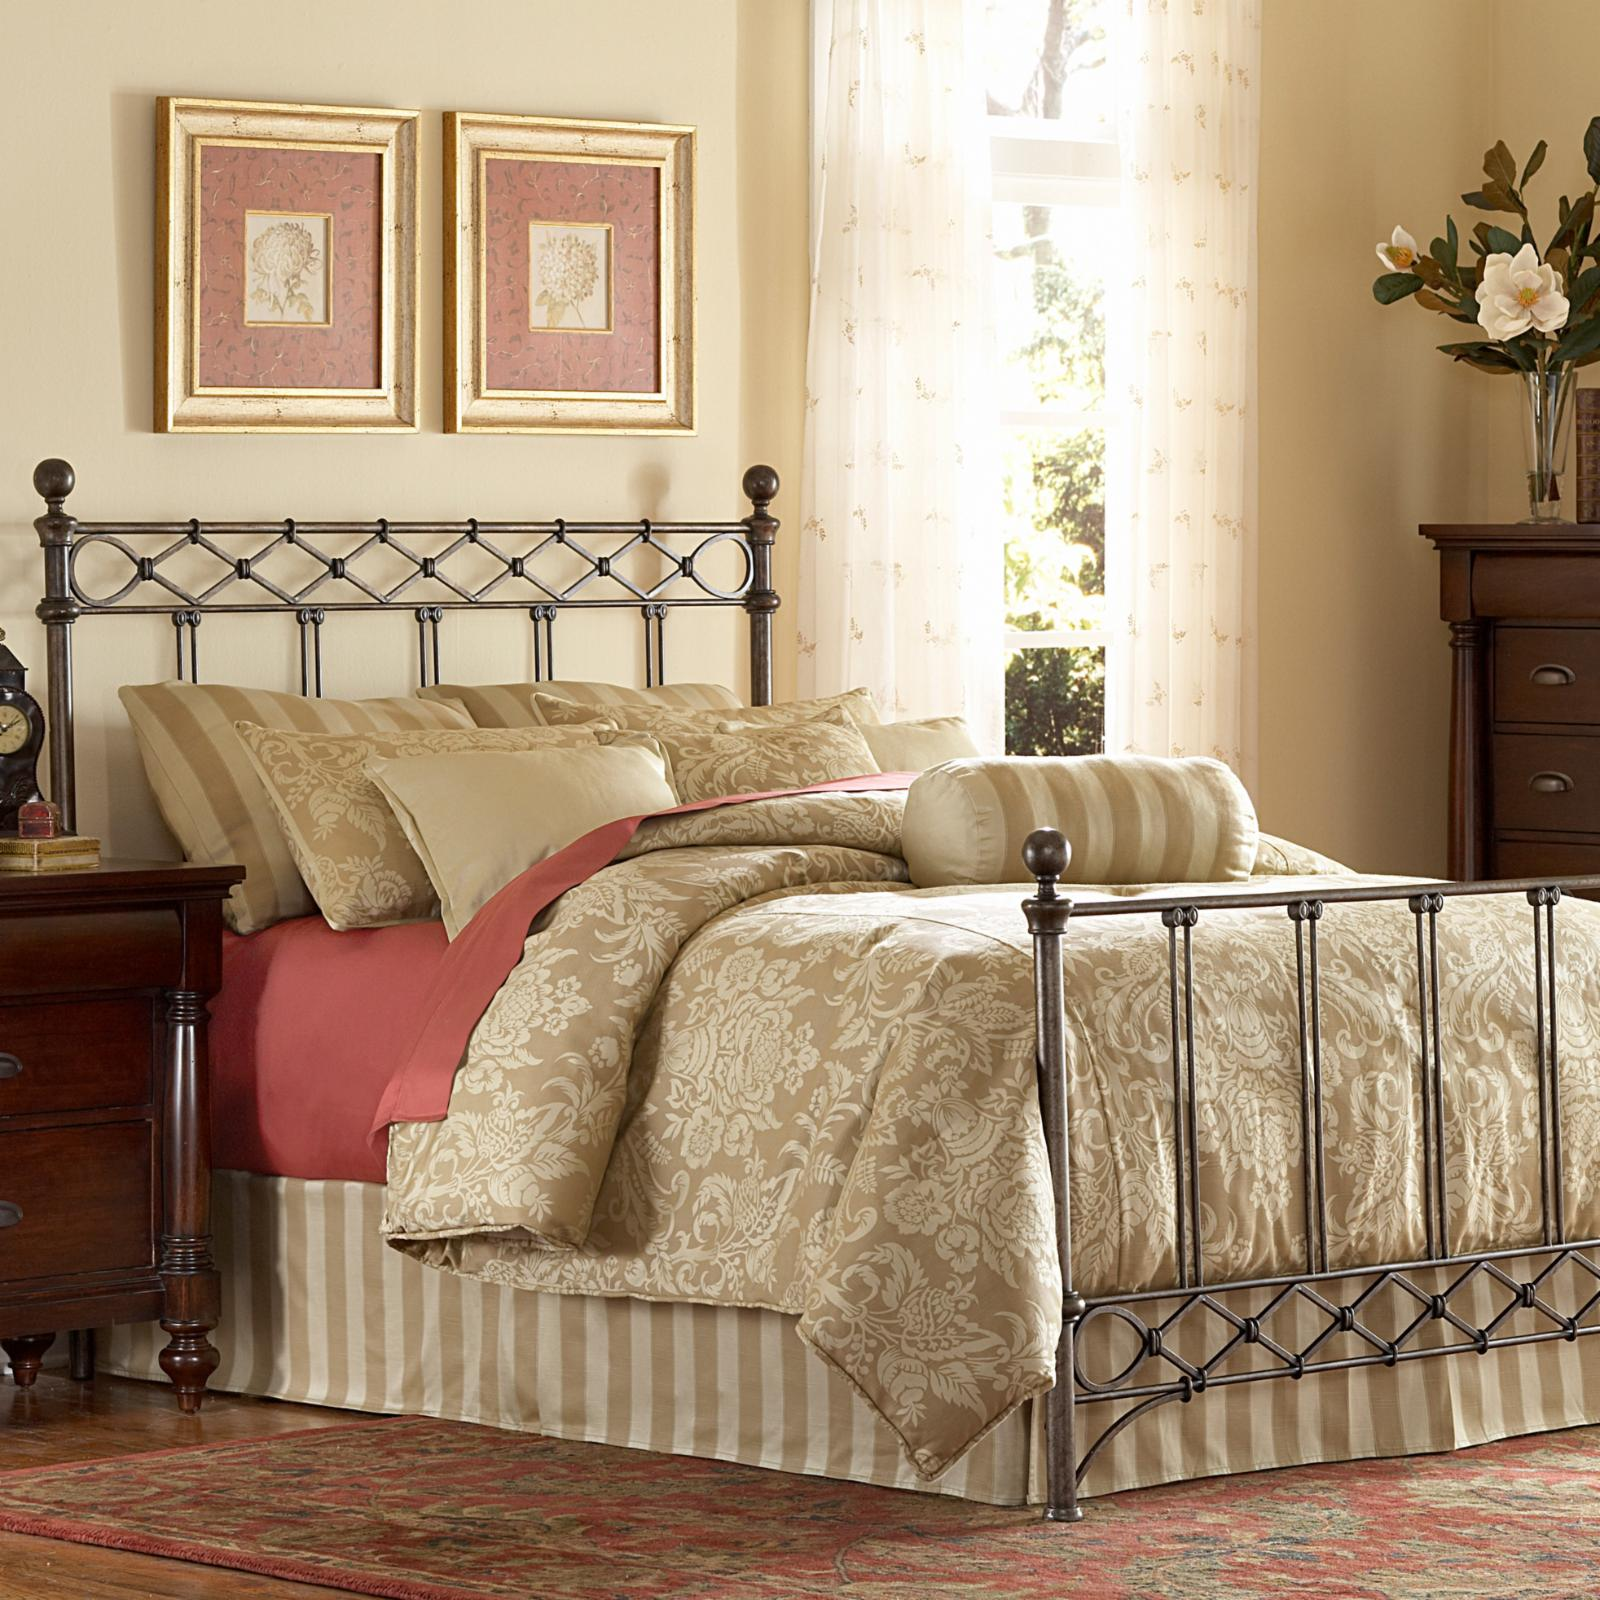 Fashion Bed Group Argyle Bed - RN709-6